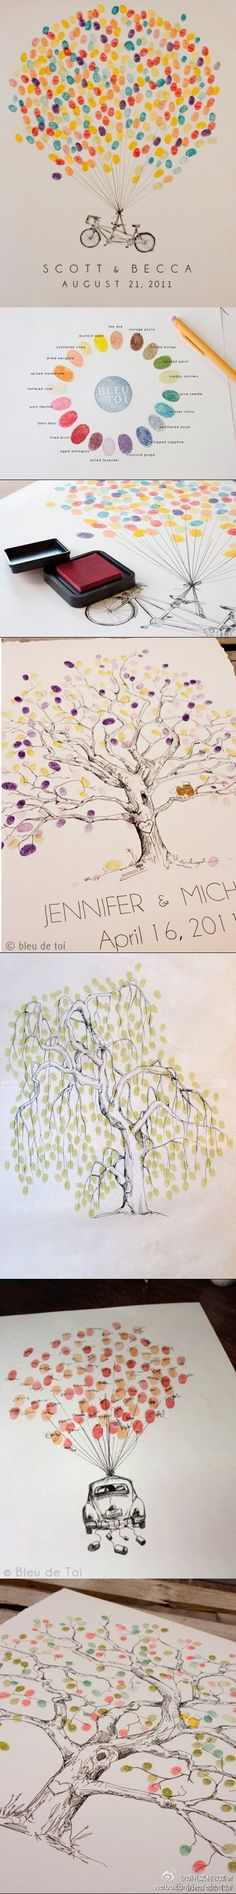 Fingerprint guestbook ideas